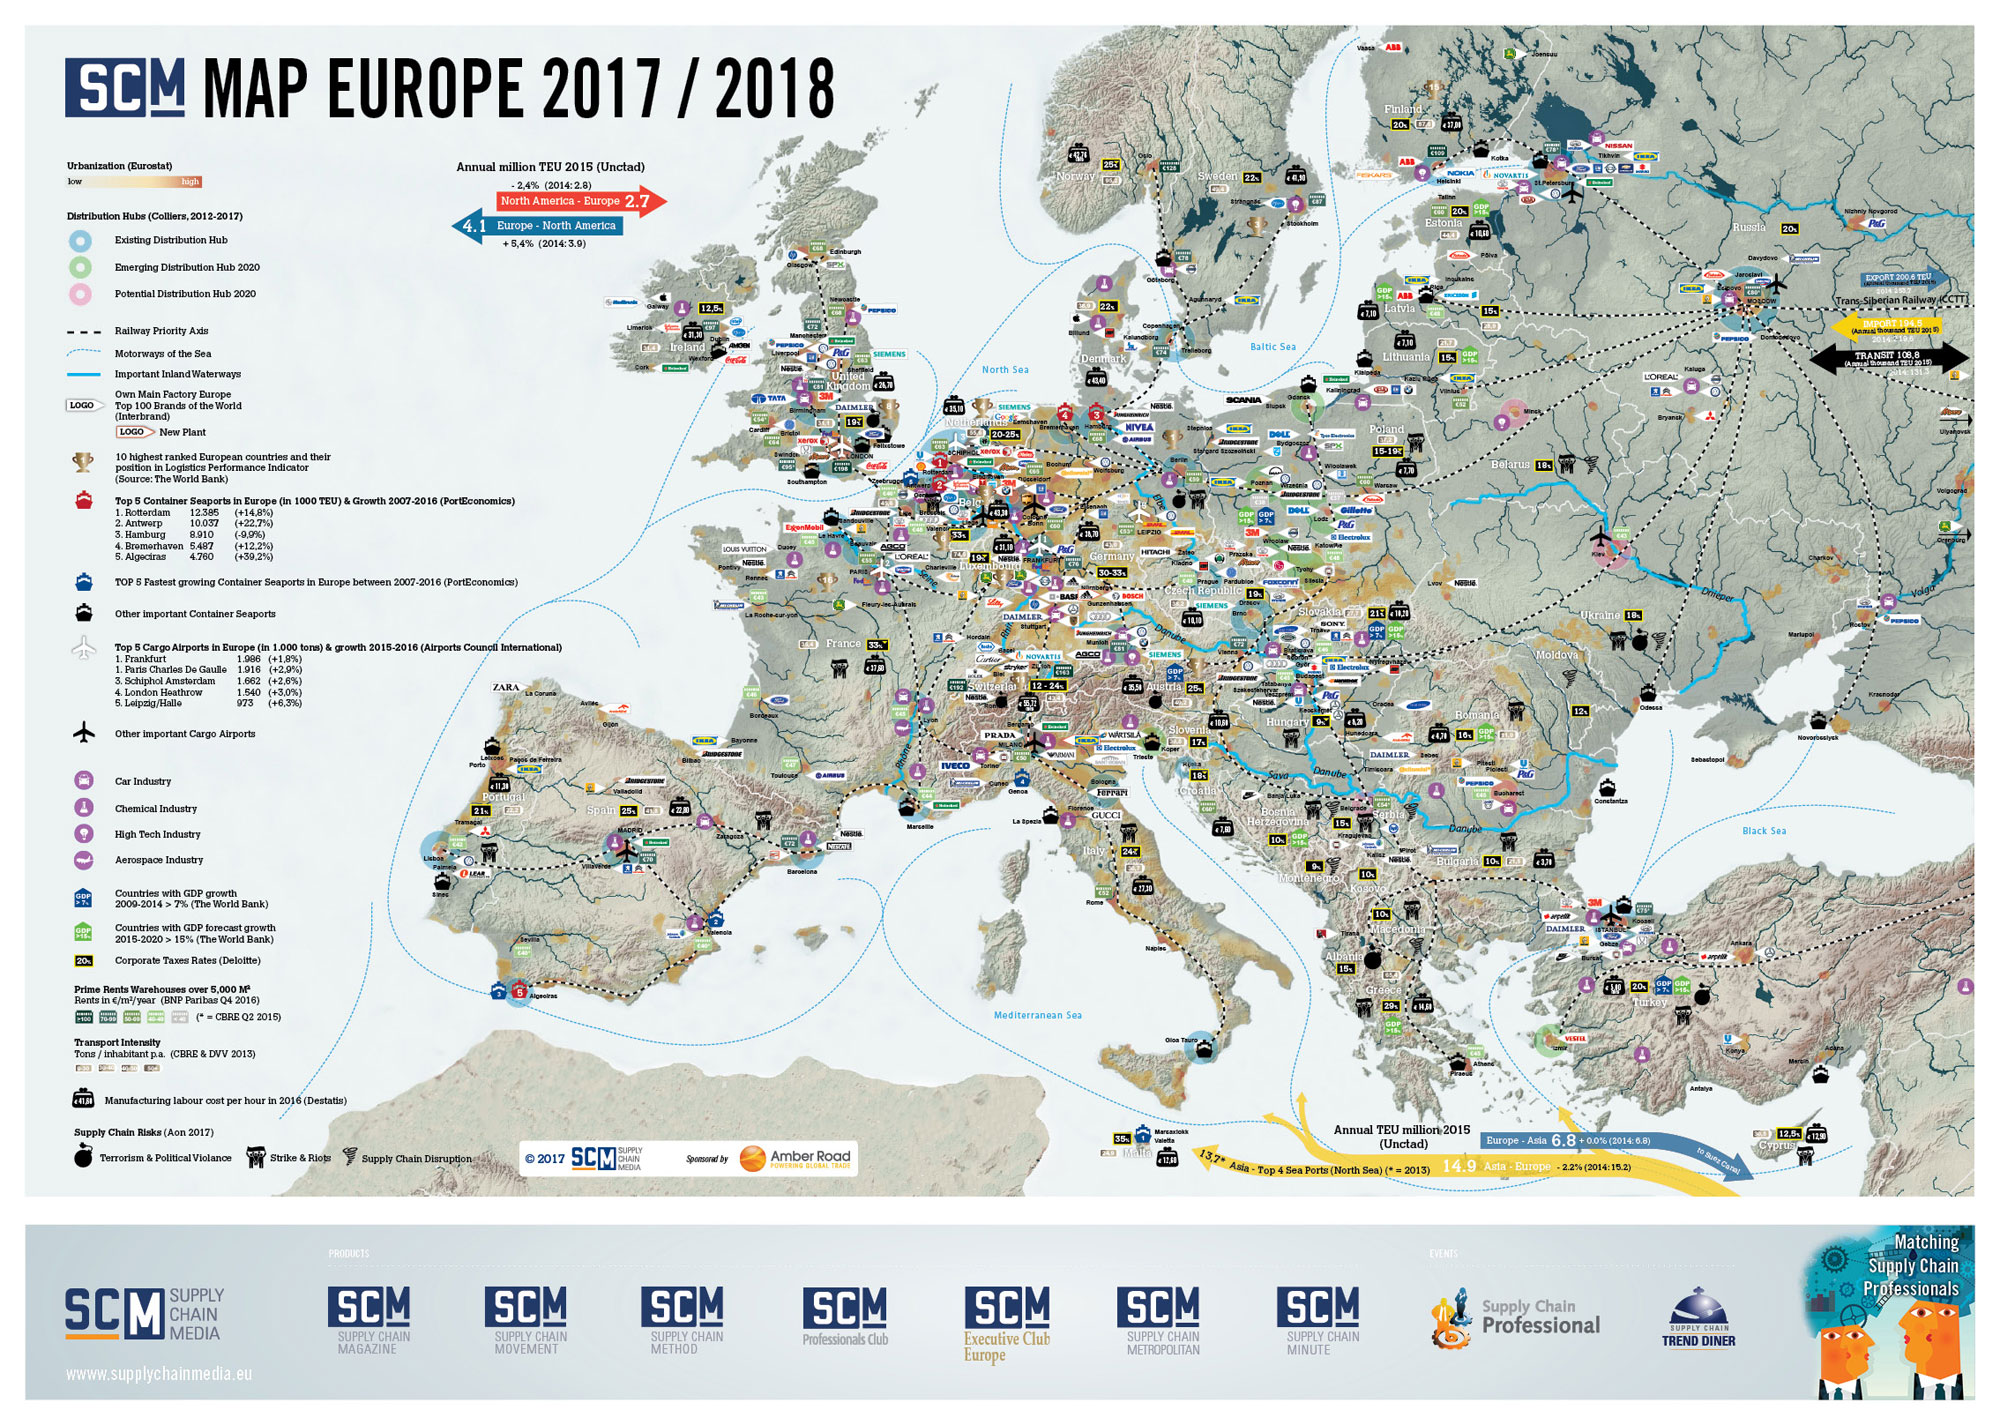 Dowload The Latest Version Of The Europe Map (PDF)